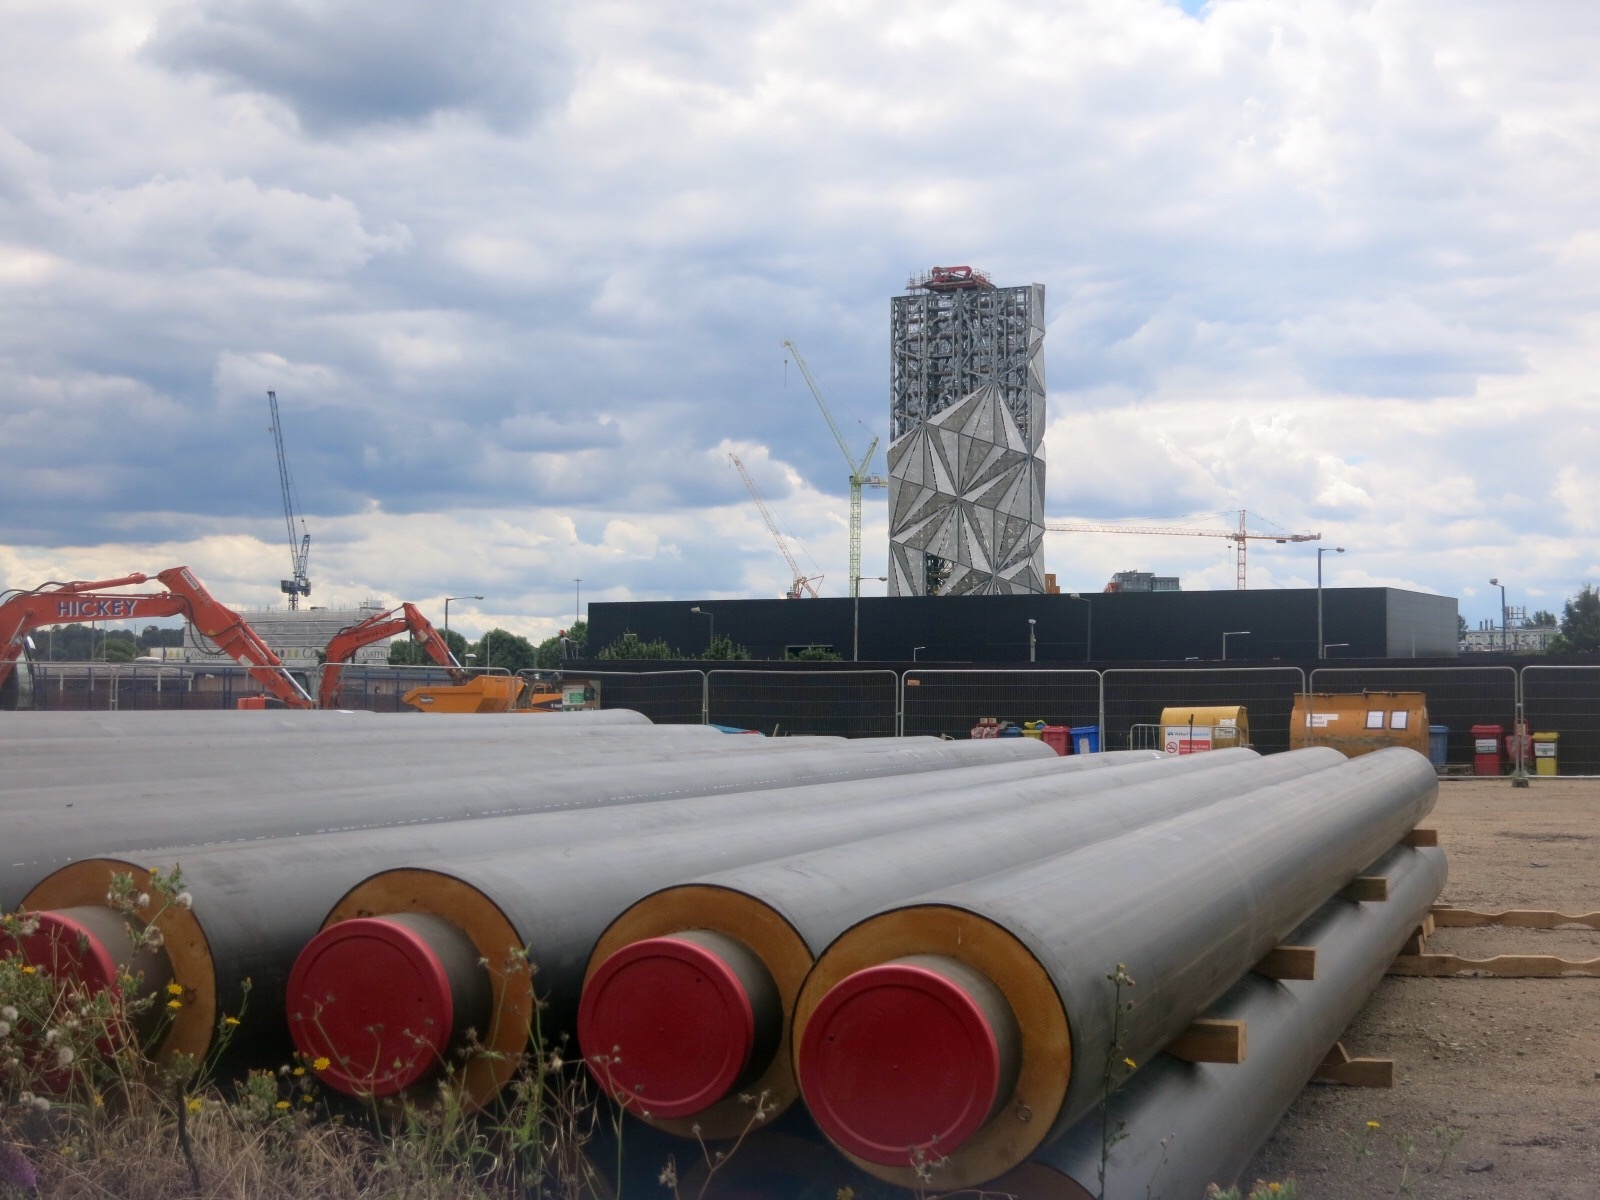 District heating pipes for installation at Upper Riverside development by  Trent Energy  - July 2016 [greenpenlondon]